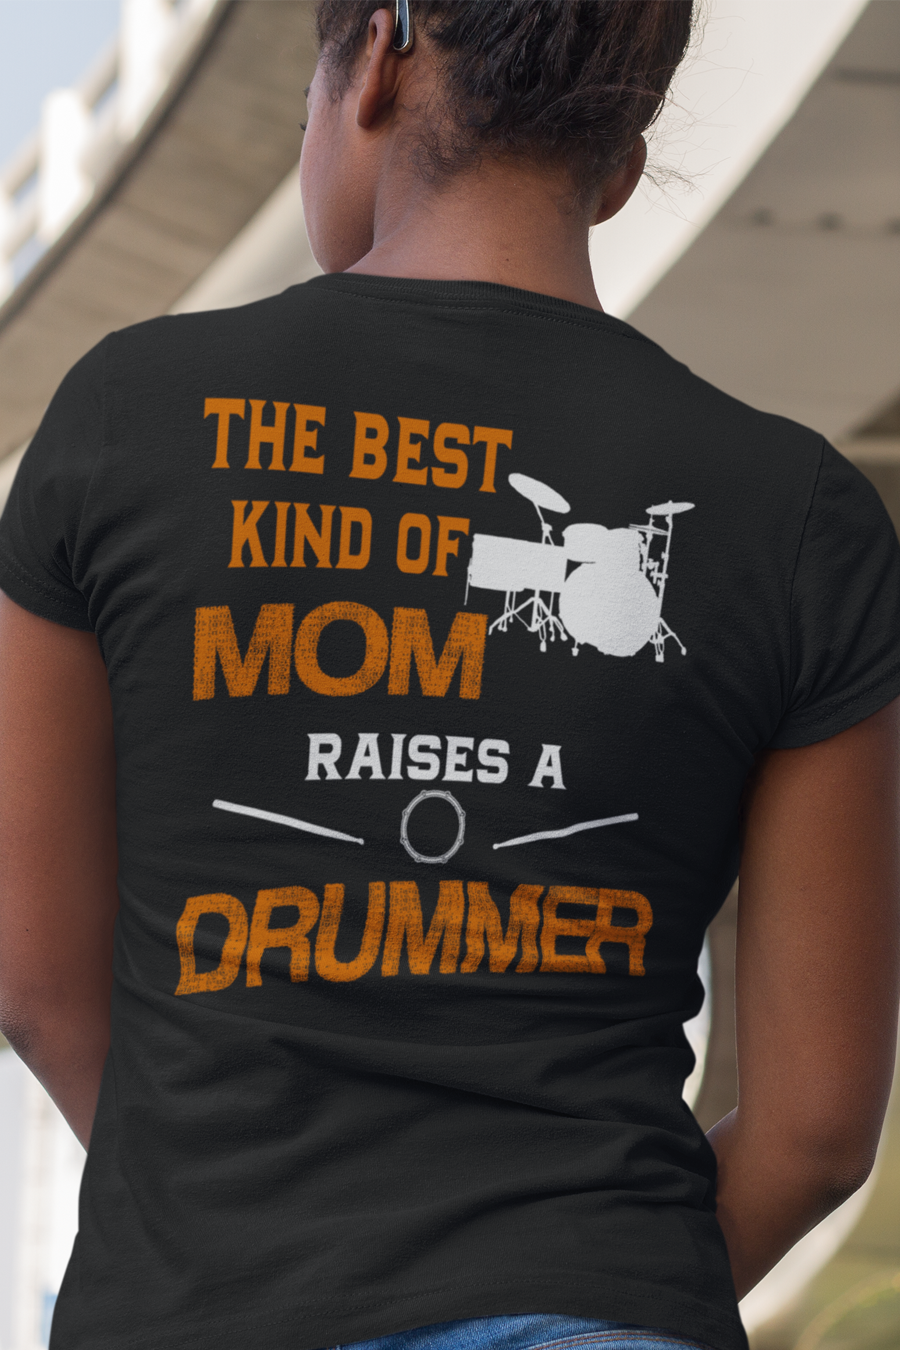 32b56cef5 Drumming Shirt - The Best Kind Of Mom Raises A Drummer. Click here for many